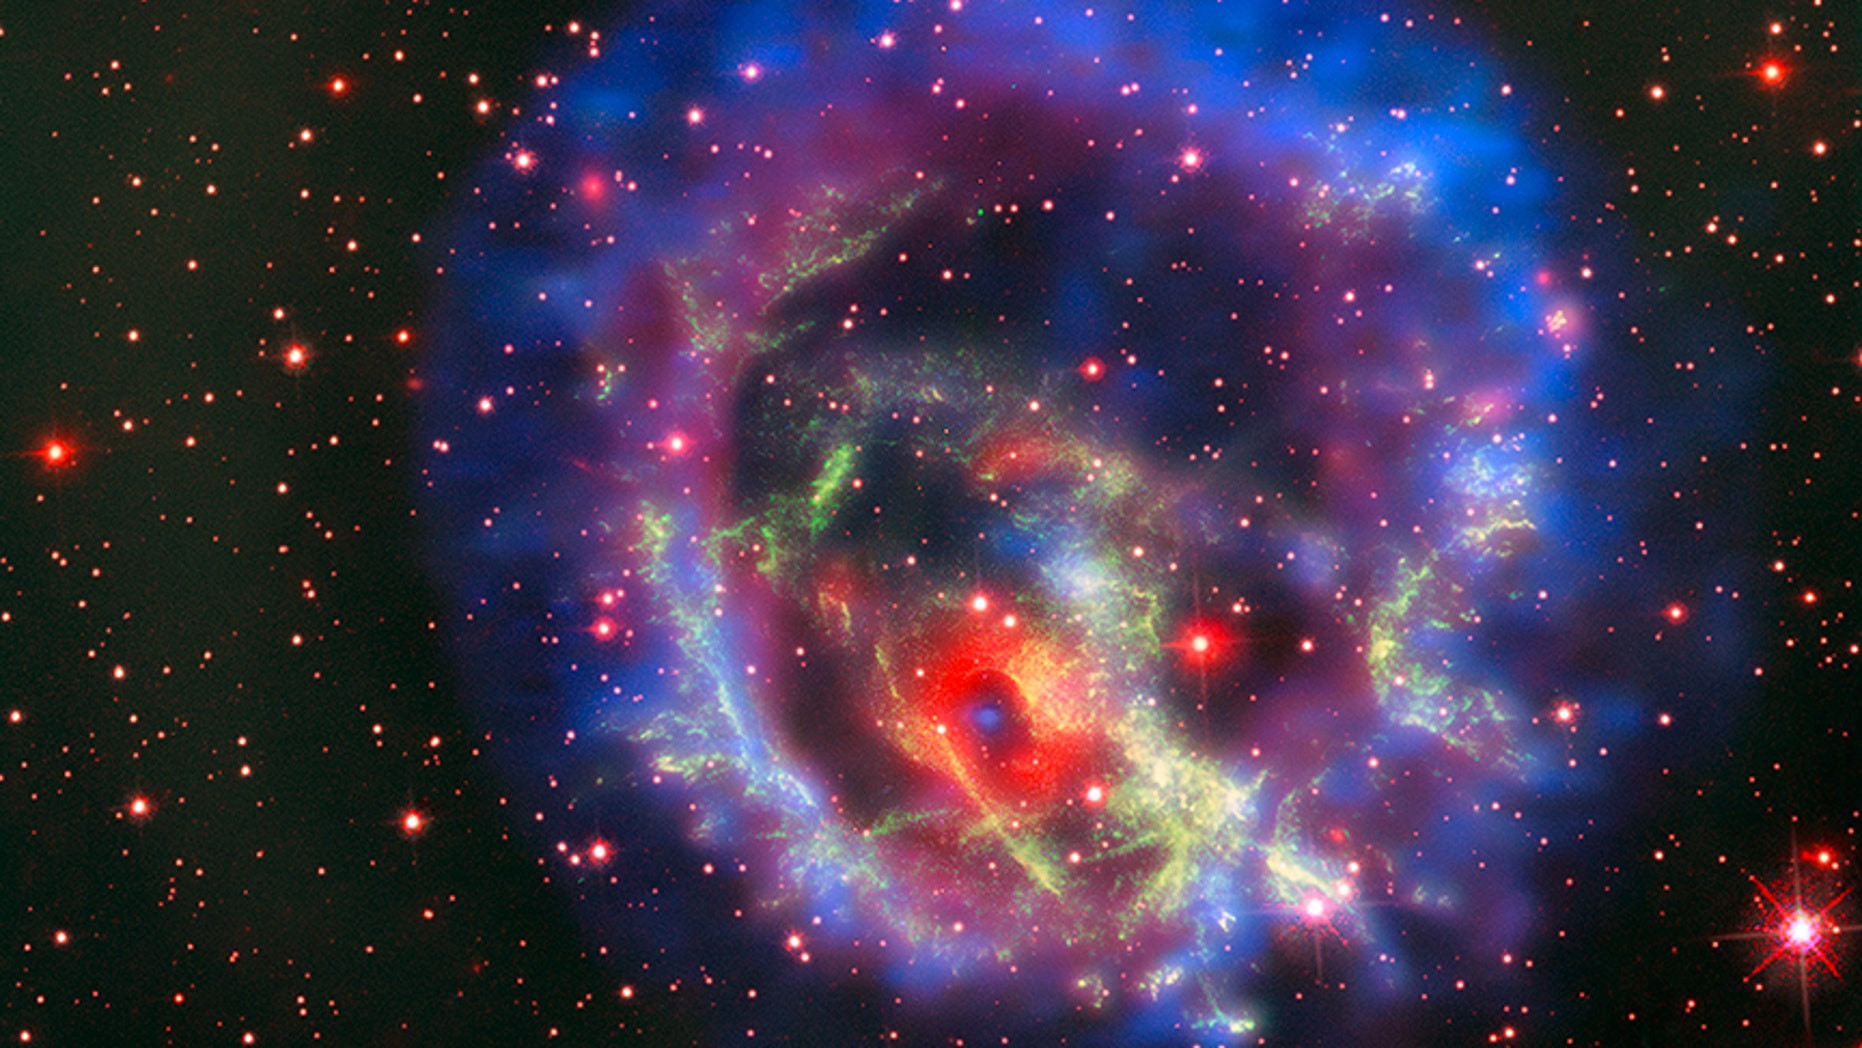 The new composite image of neutron star E0102, released on May 23, combines data from NASA's Chandra X-Ray Observatory (seen in blue and purple), the Multi Unit Spectroscopic Explorer instrument on the European Southern Observatory's Very Large Telescope in Chile (in bright red) and the Hubble Space Telescope (in dark red and green).